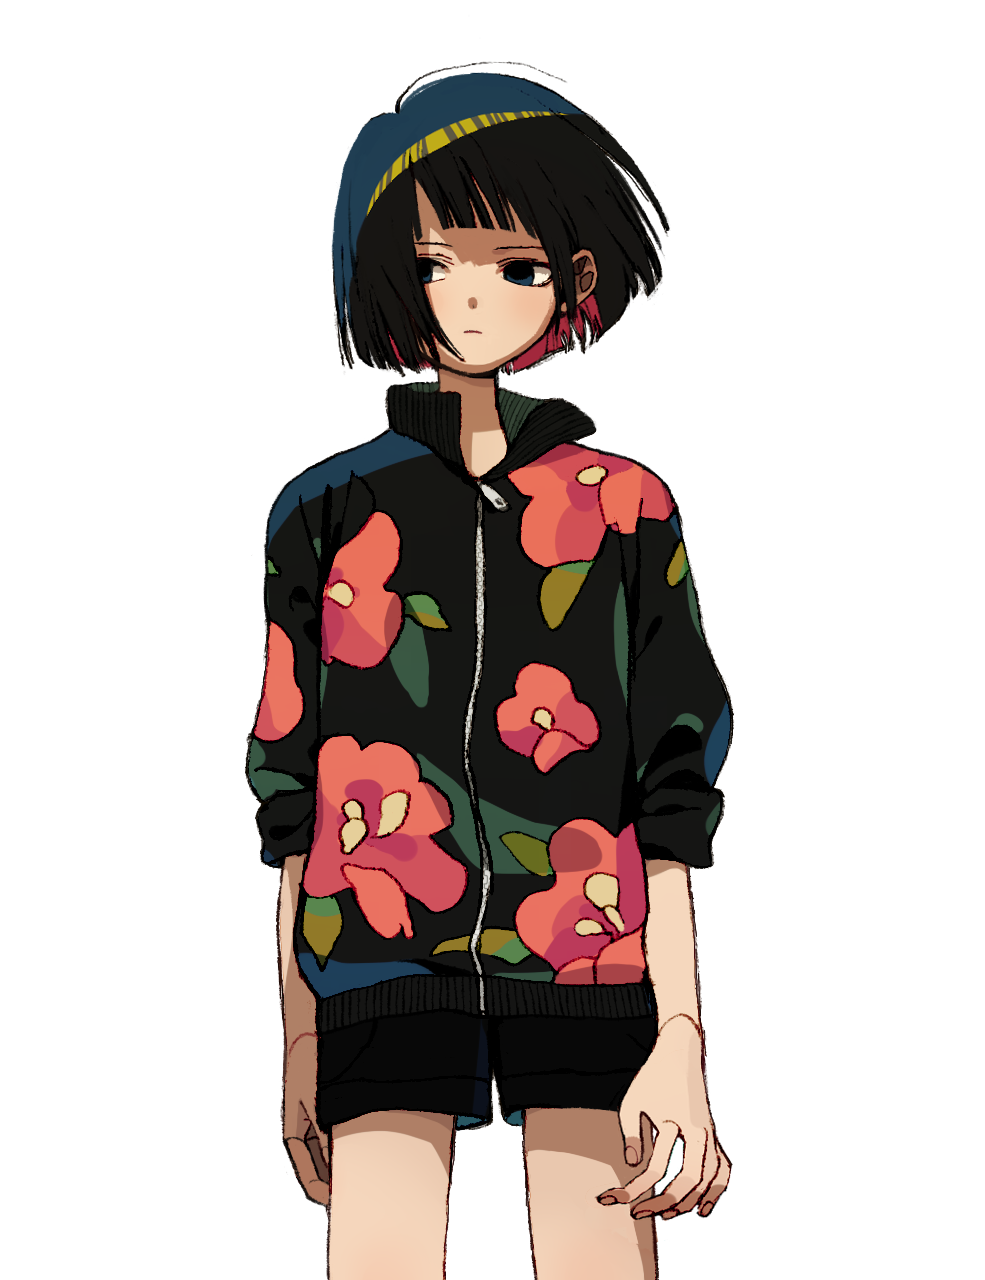 1girl black_eyes black_hair black_shorts closed_mouth colored_inner_hair fingernails floral_print highres jacket ka_(marukogedago) looking_to_the_side multicolored_hair original shiny shiny_hair shorts simple_background solo standing white_background